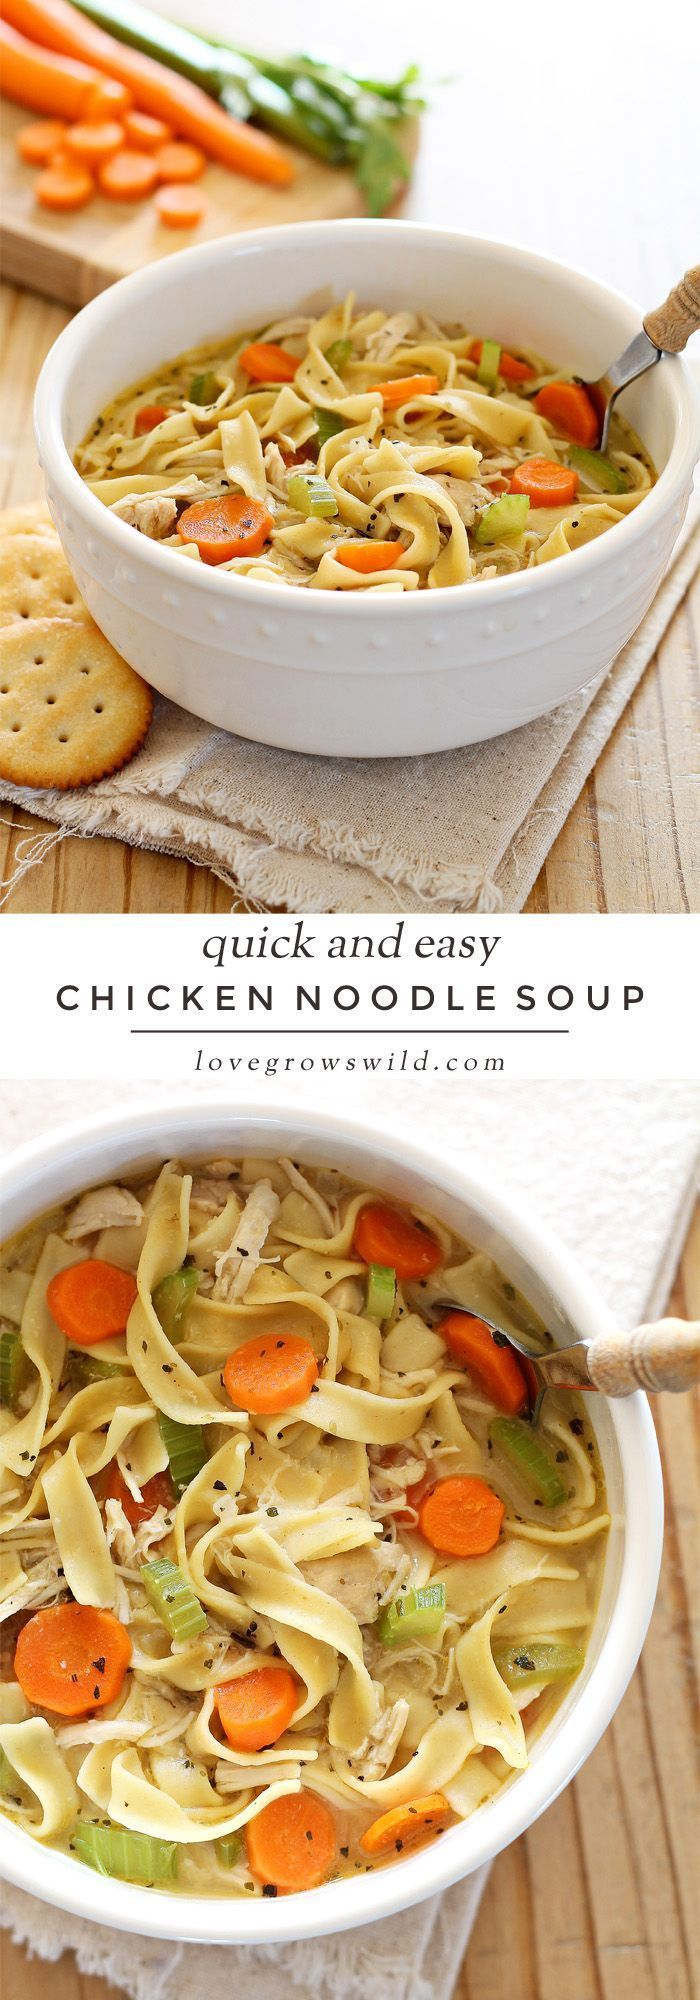 Delicious homemade Chicken Noodle Soup ready in under 30 minutes! Get the recipe for this easy meal at http://LoveGrowsWild.com